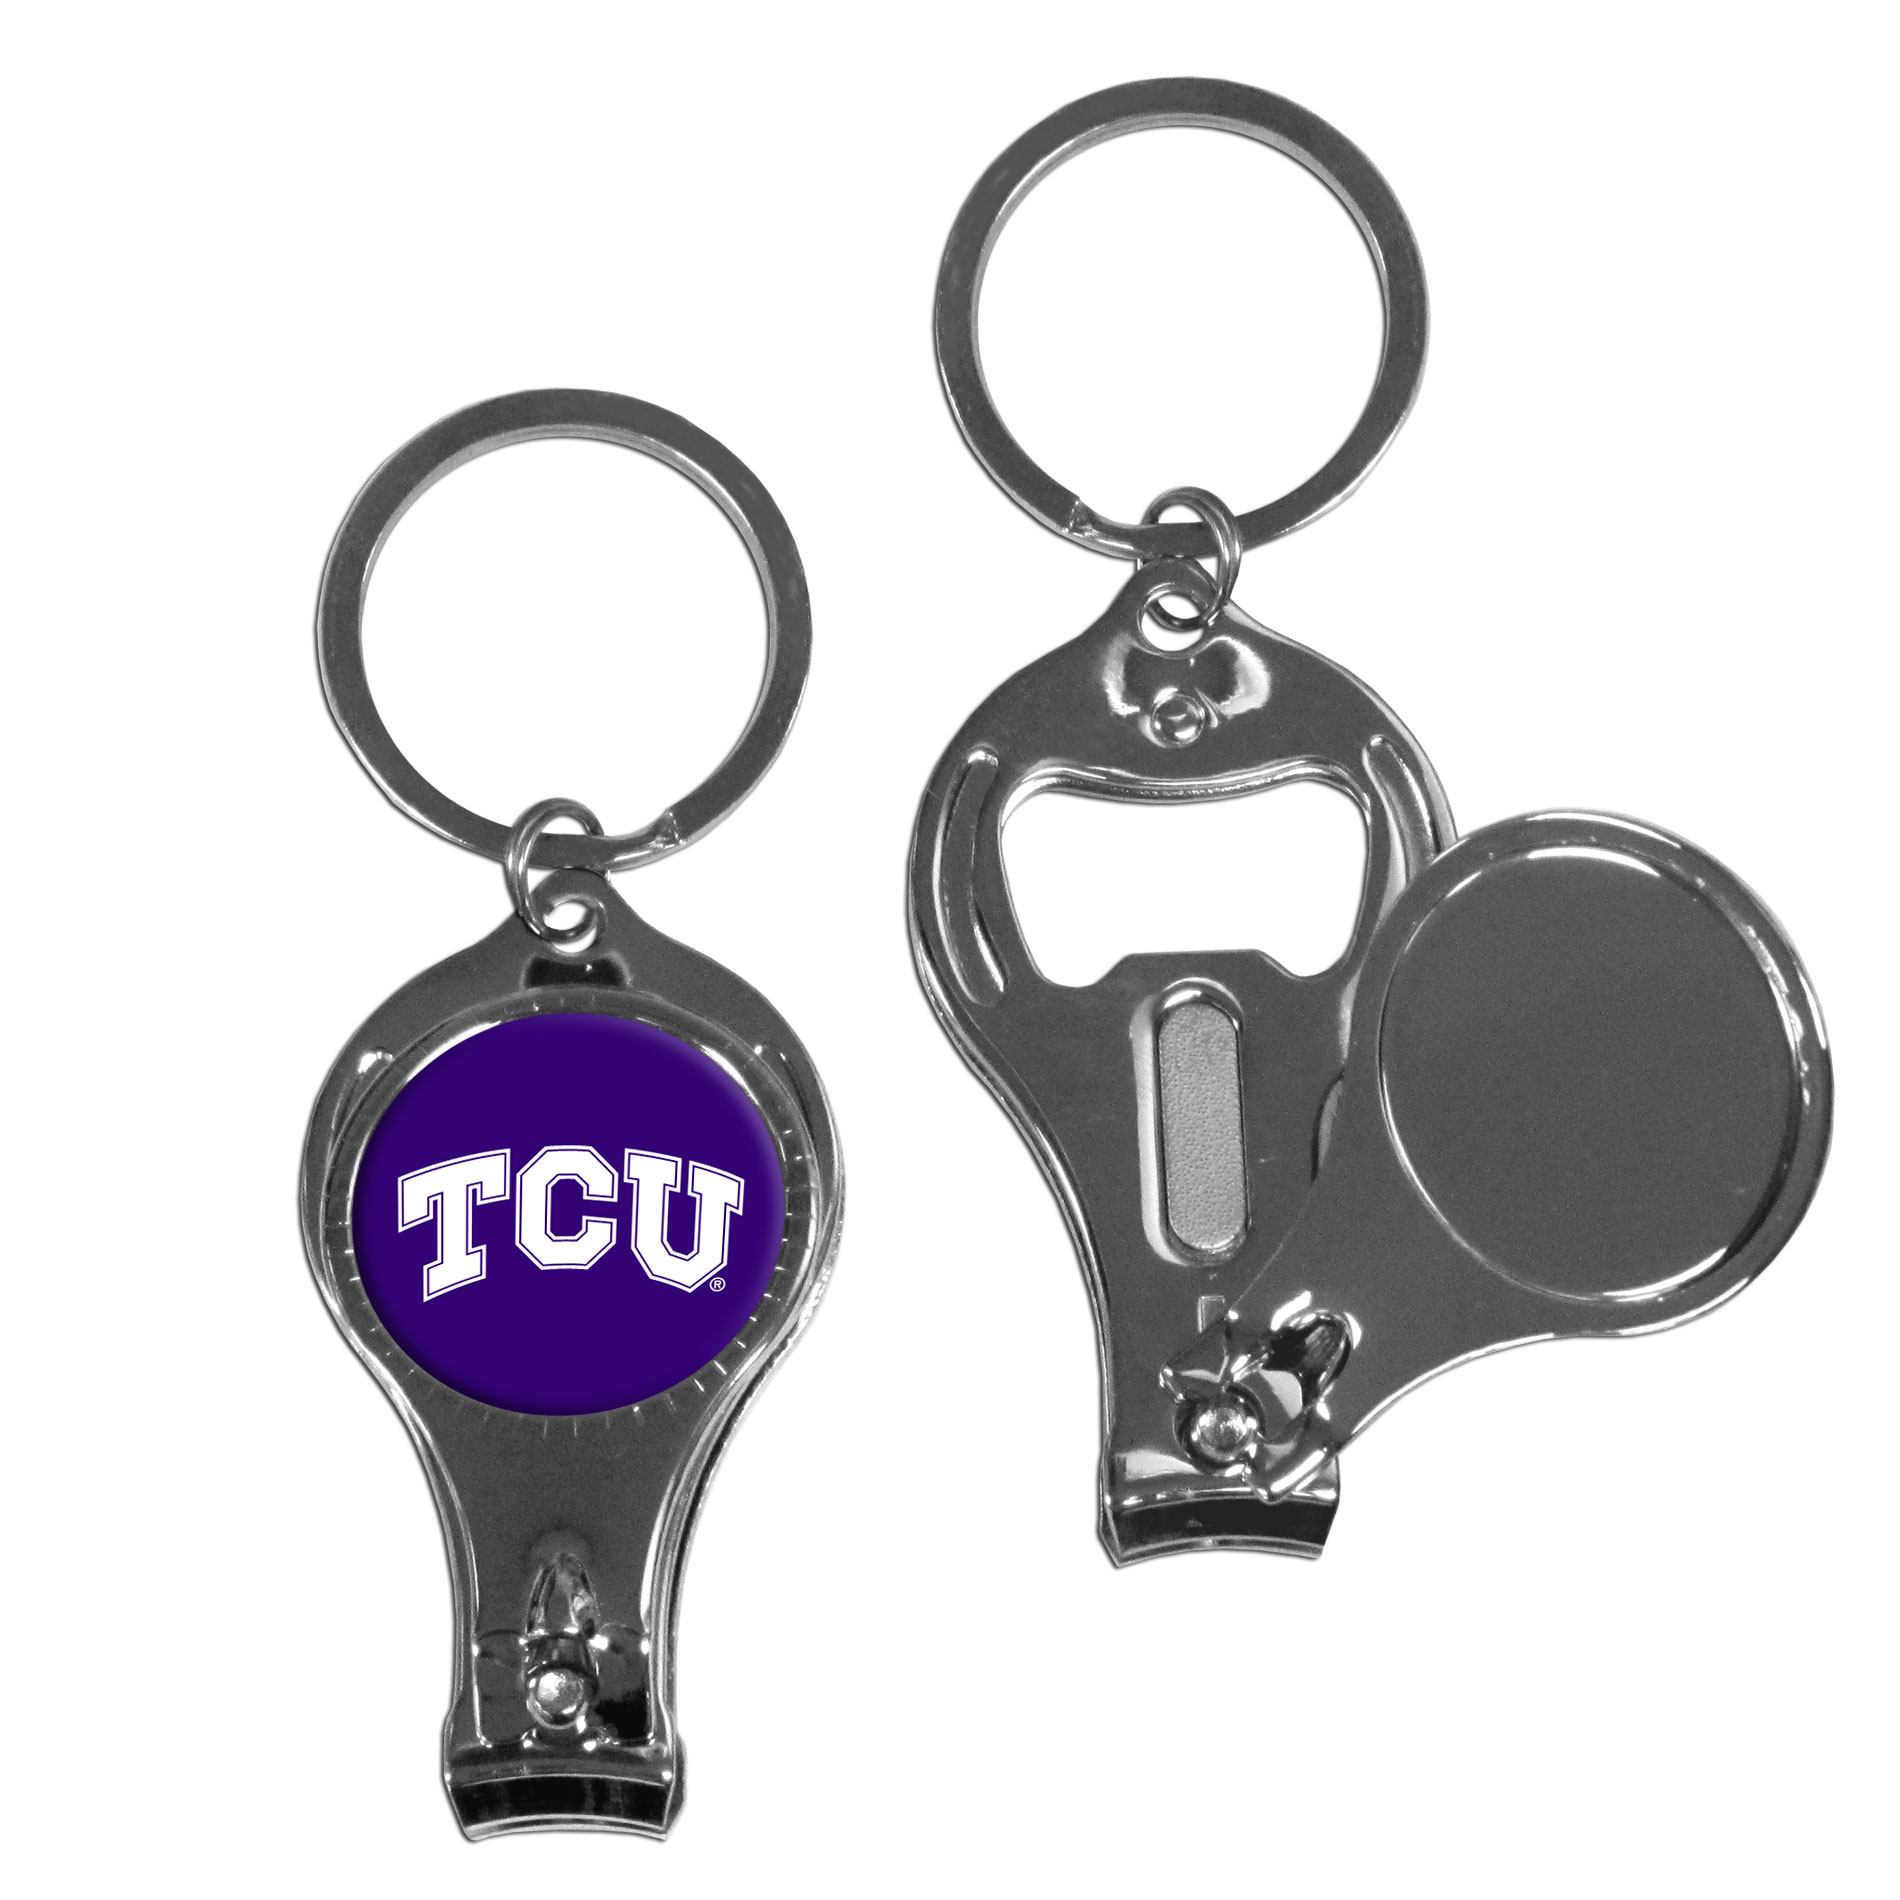 TCU Horned Frogs Nail Care/Bottle Opener Key Chain - This unique TCU Horned Frogs key chain has 3 great functions! The key chain opens to become a nail clipper, when open you can access the nail file pad and the key chain has a bottle opener.